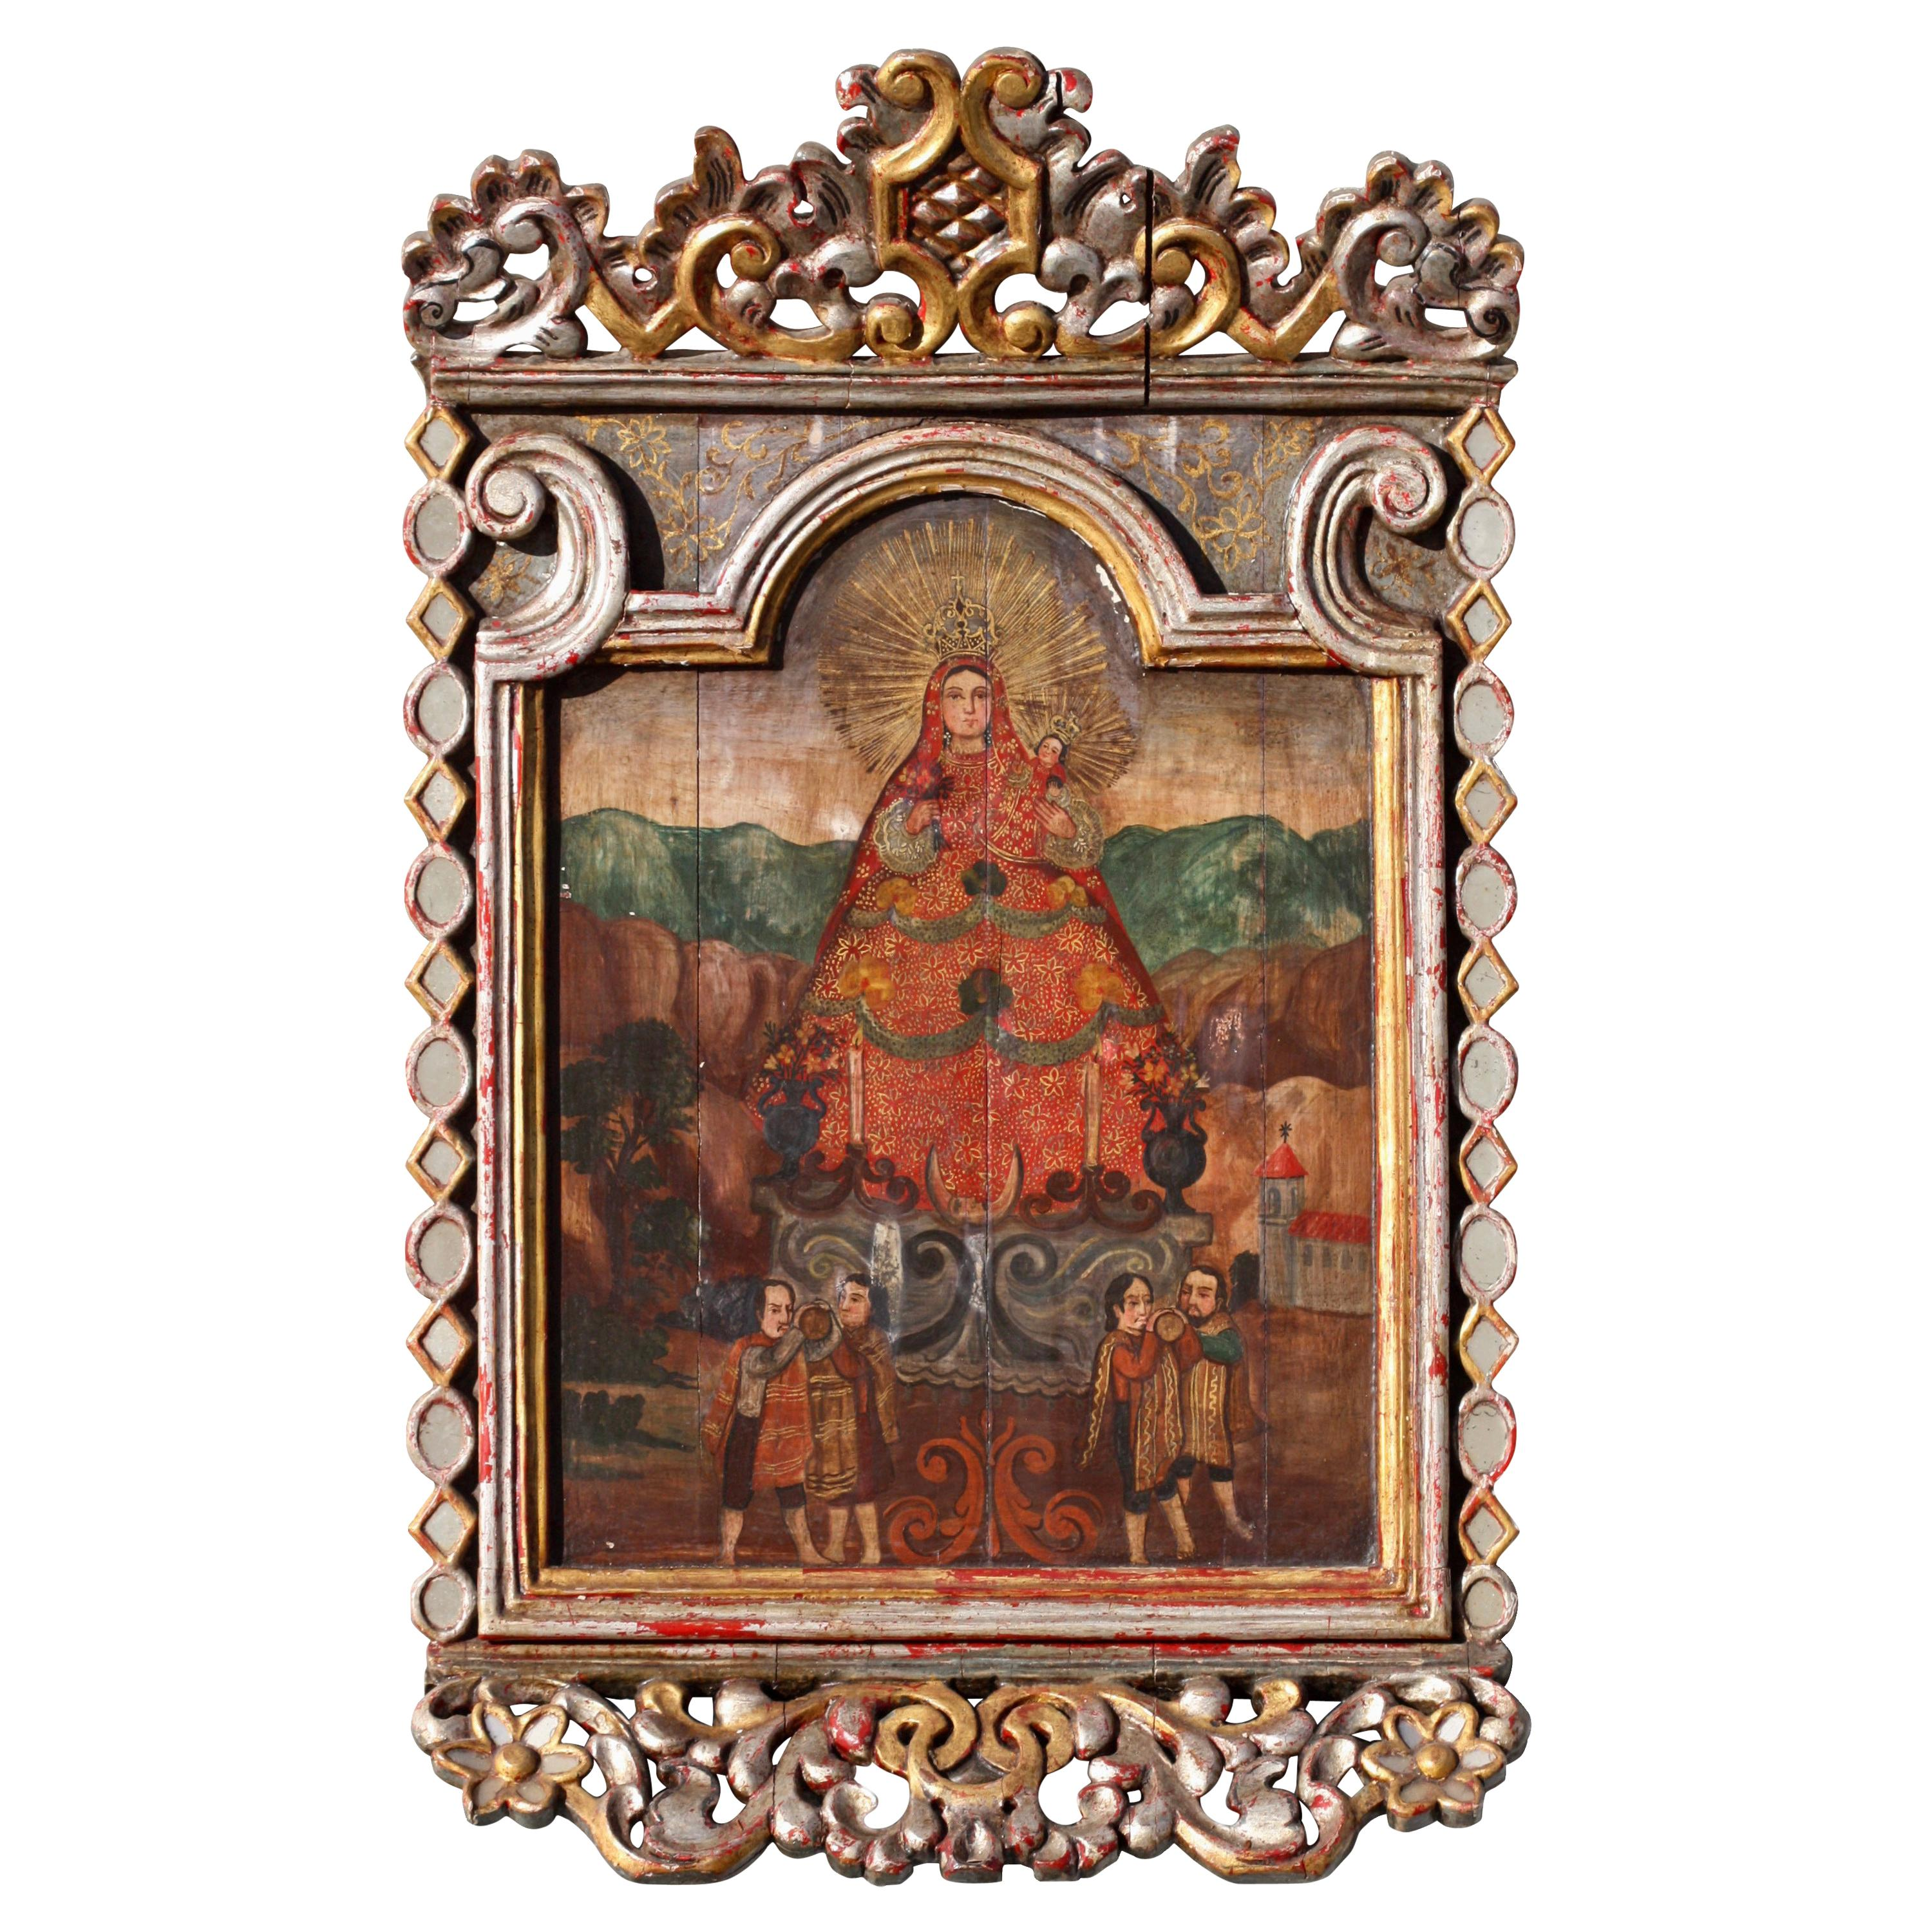 After Cristóbal De Hernández Quintana La Virgen Painting Oil/Panel